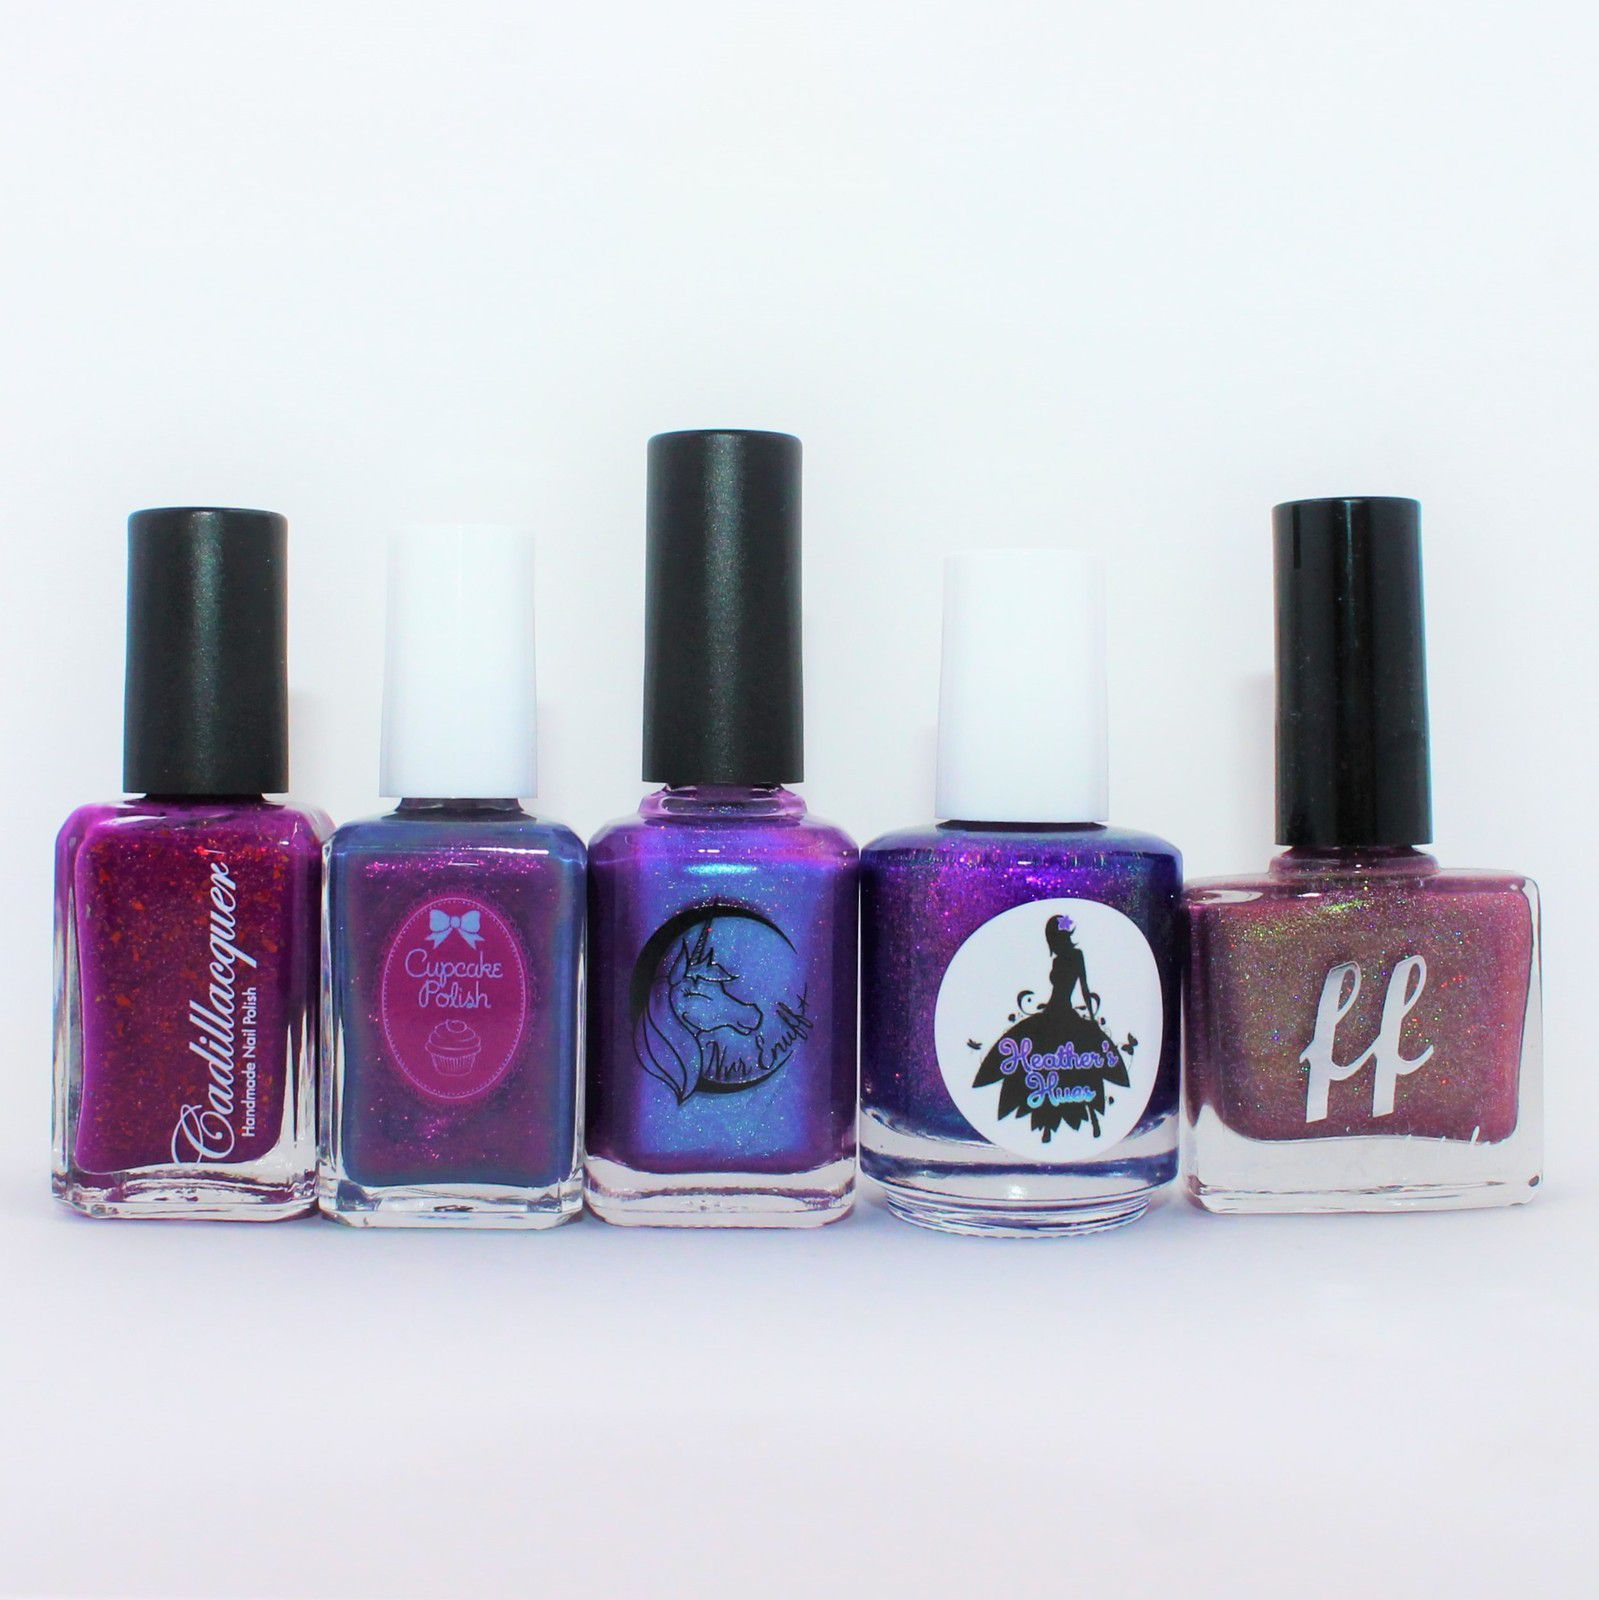 PPU January 2020: CadillacquerThe Underestimated One, Cupcake Polish Retrograde, Nre Enuff Pinwheel Galaxy, Heather's Hues Scorpius. HHC December 2019: Femme Fatale Desperation